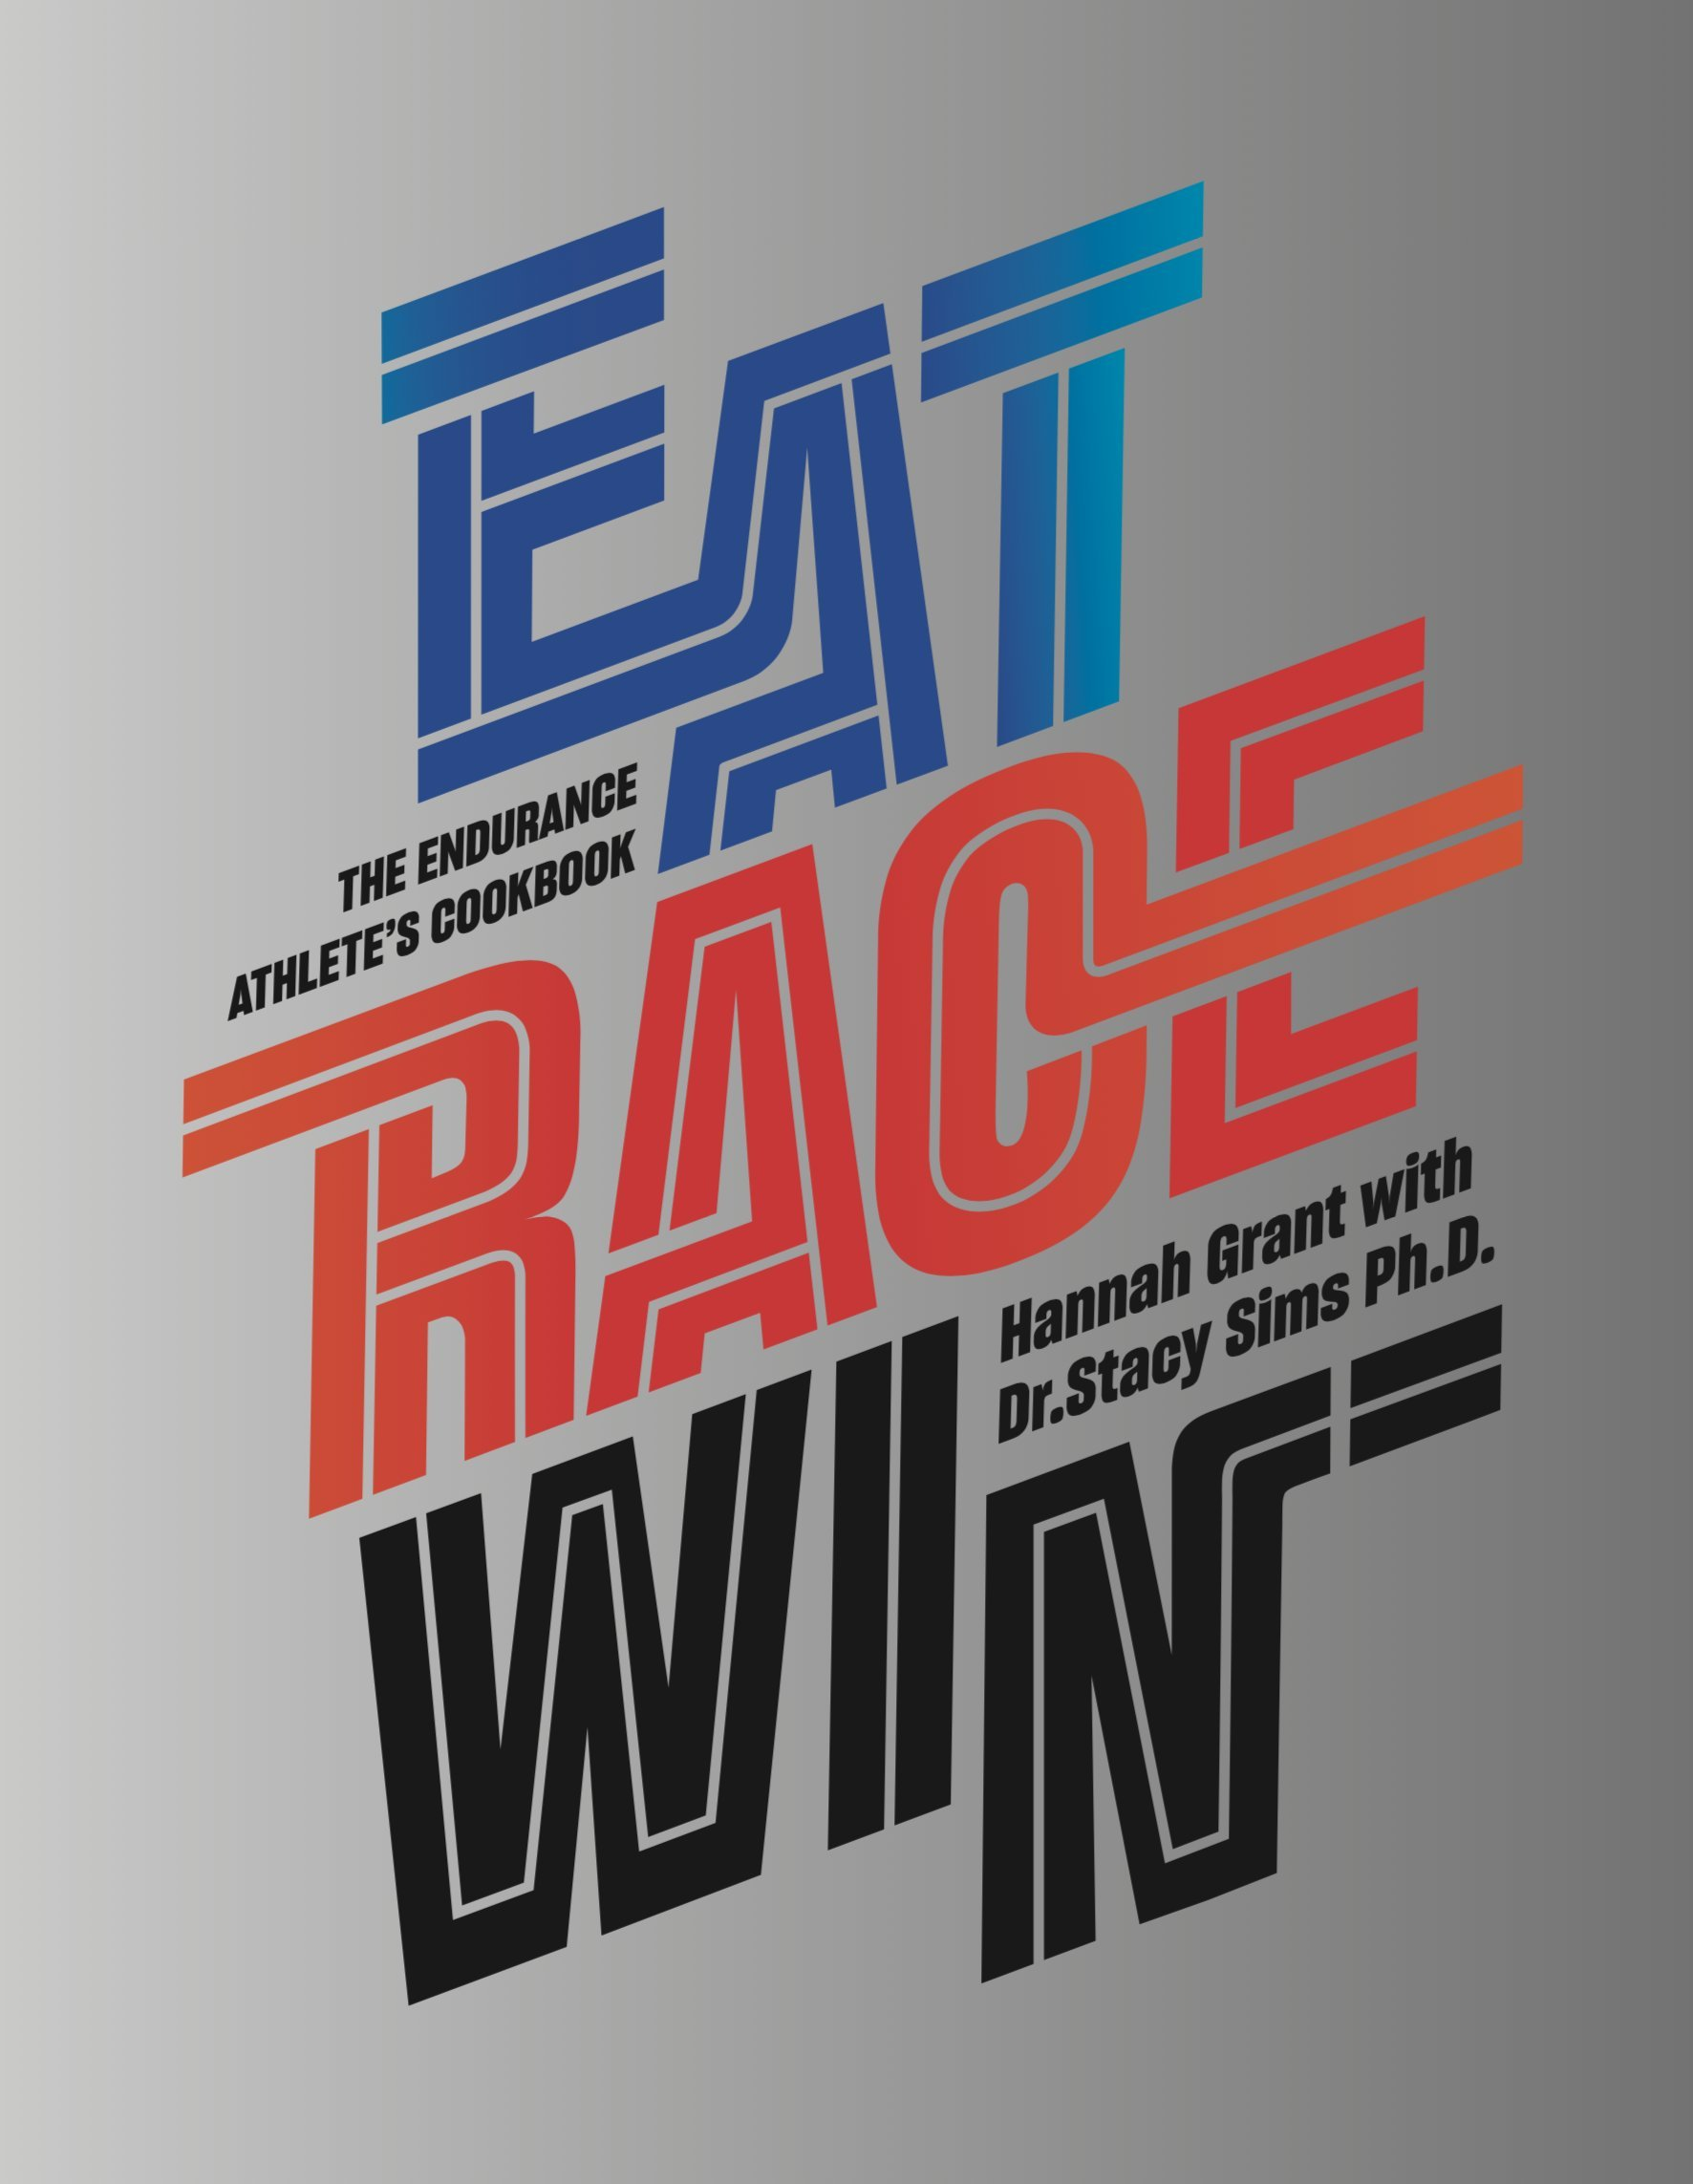 EAT RACE WIN cover